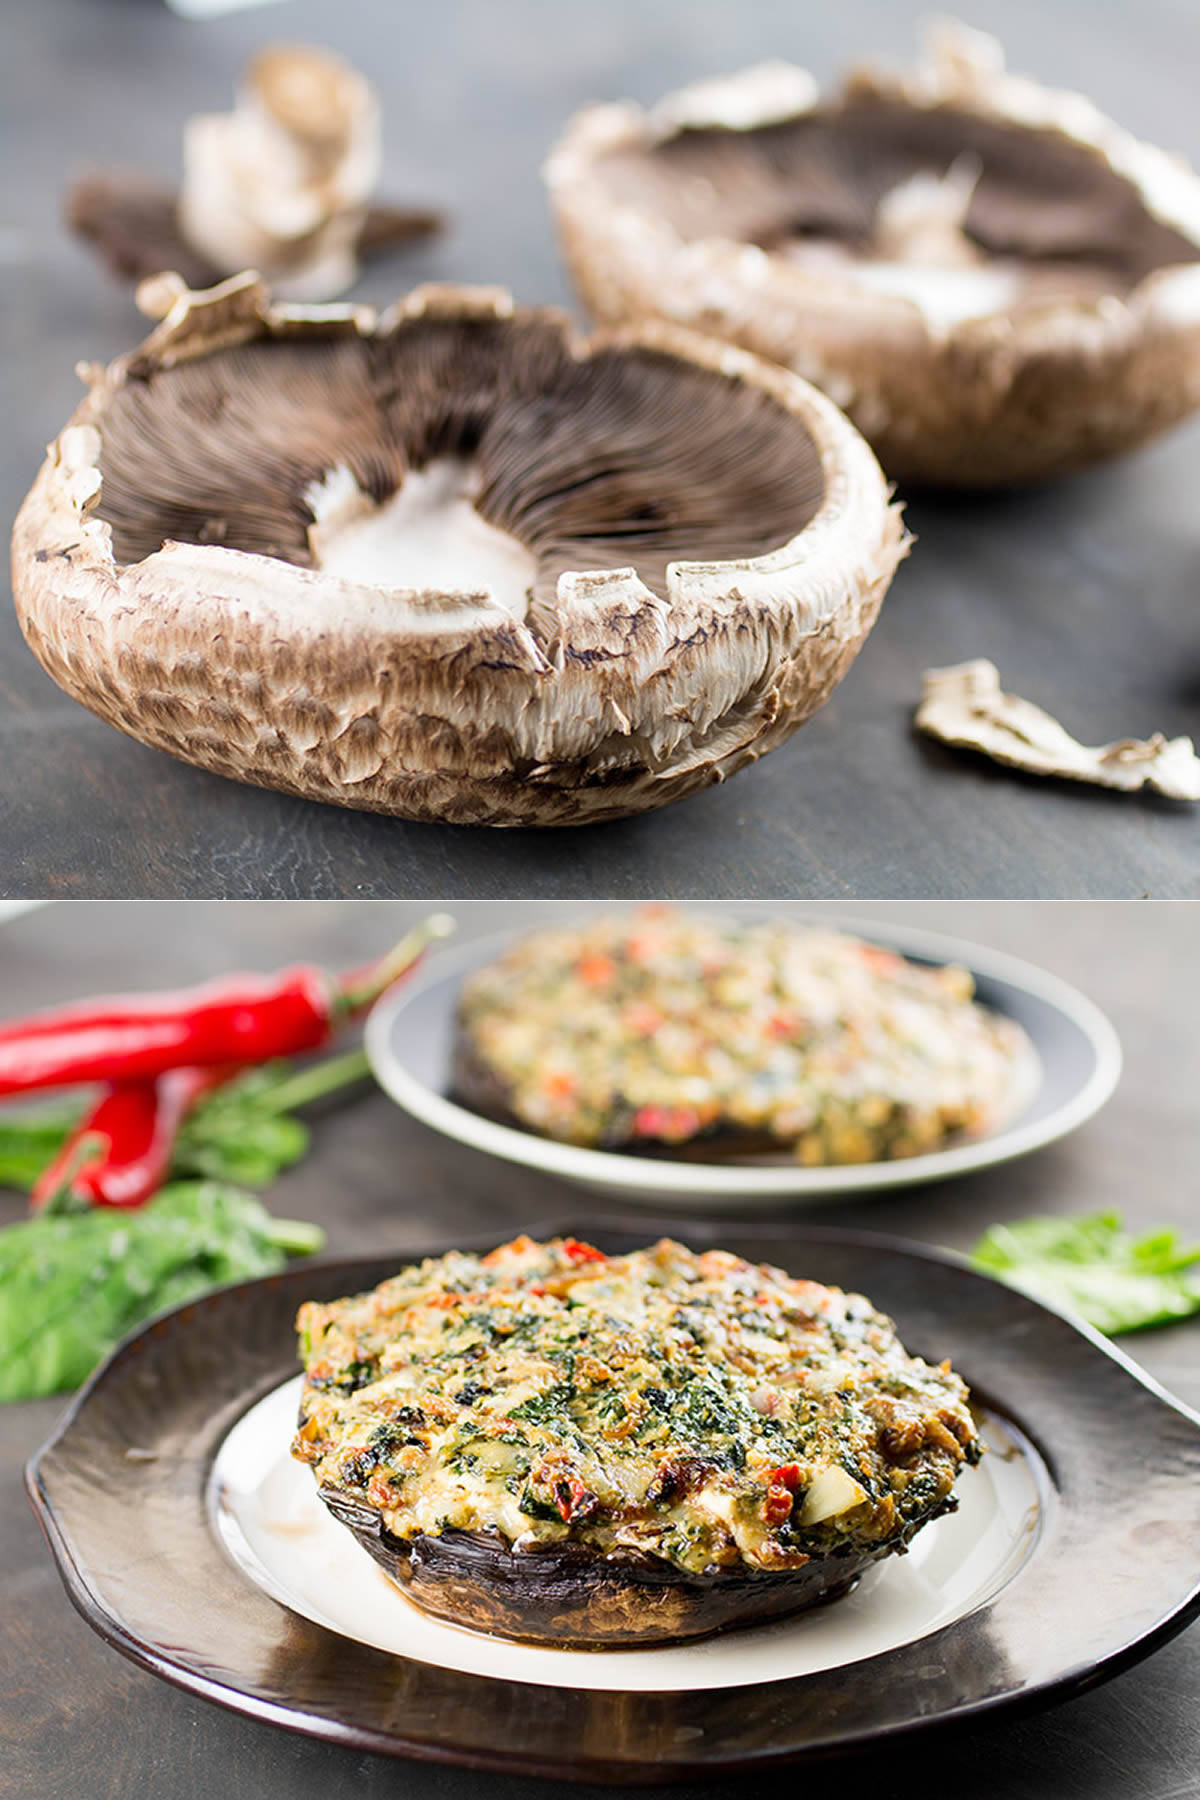 Stuffed Portobello Mushrooms with Spinach and Cheese